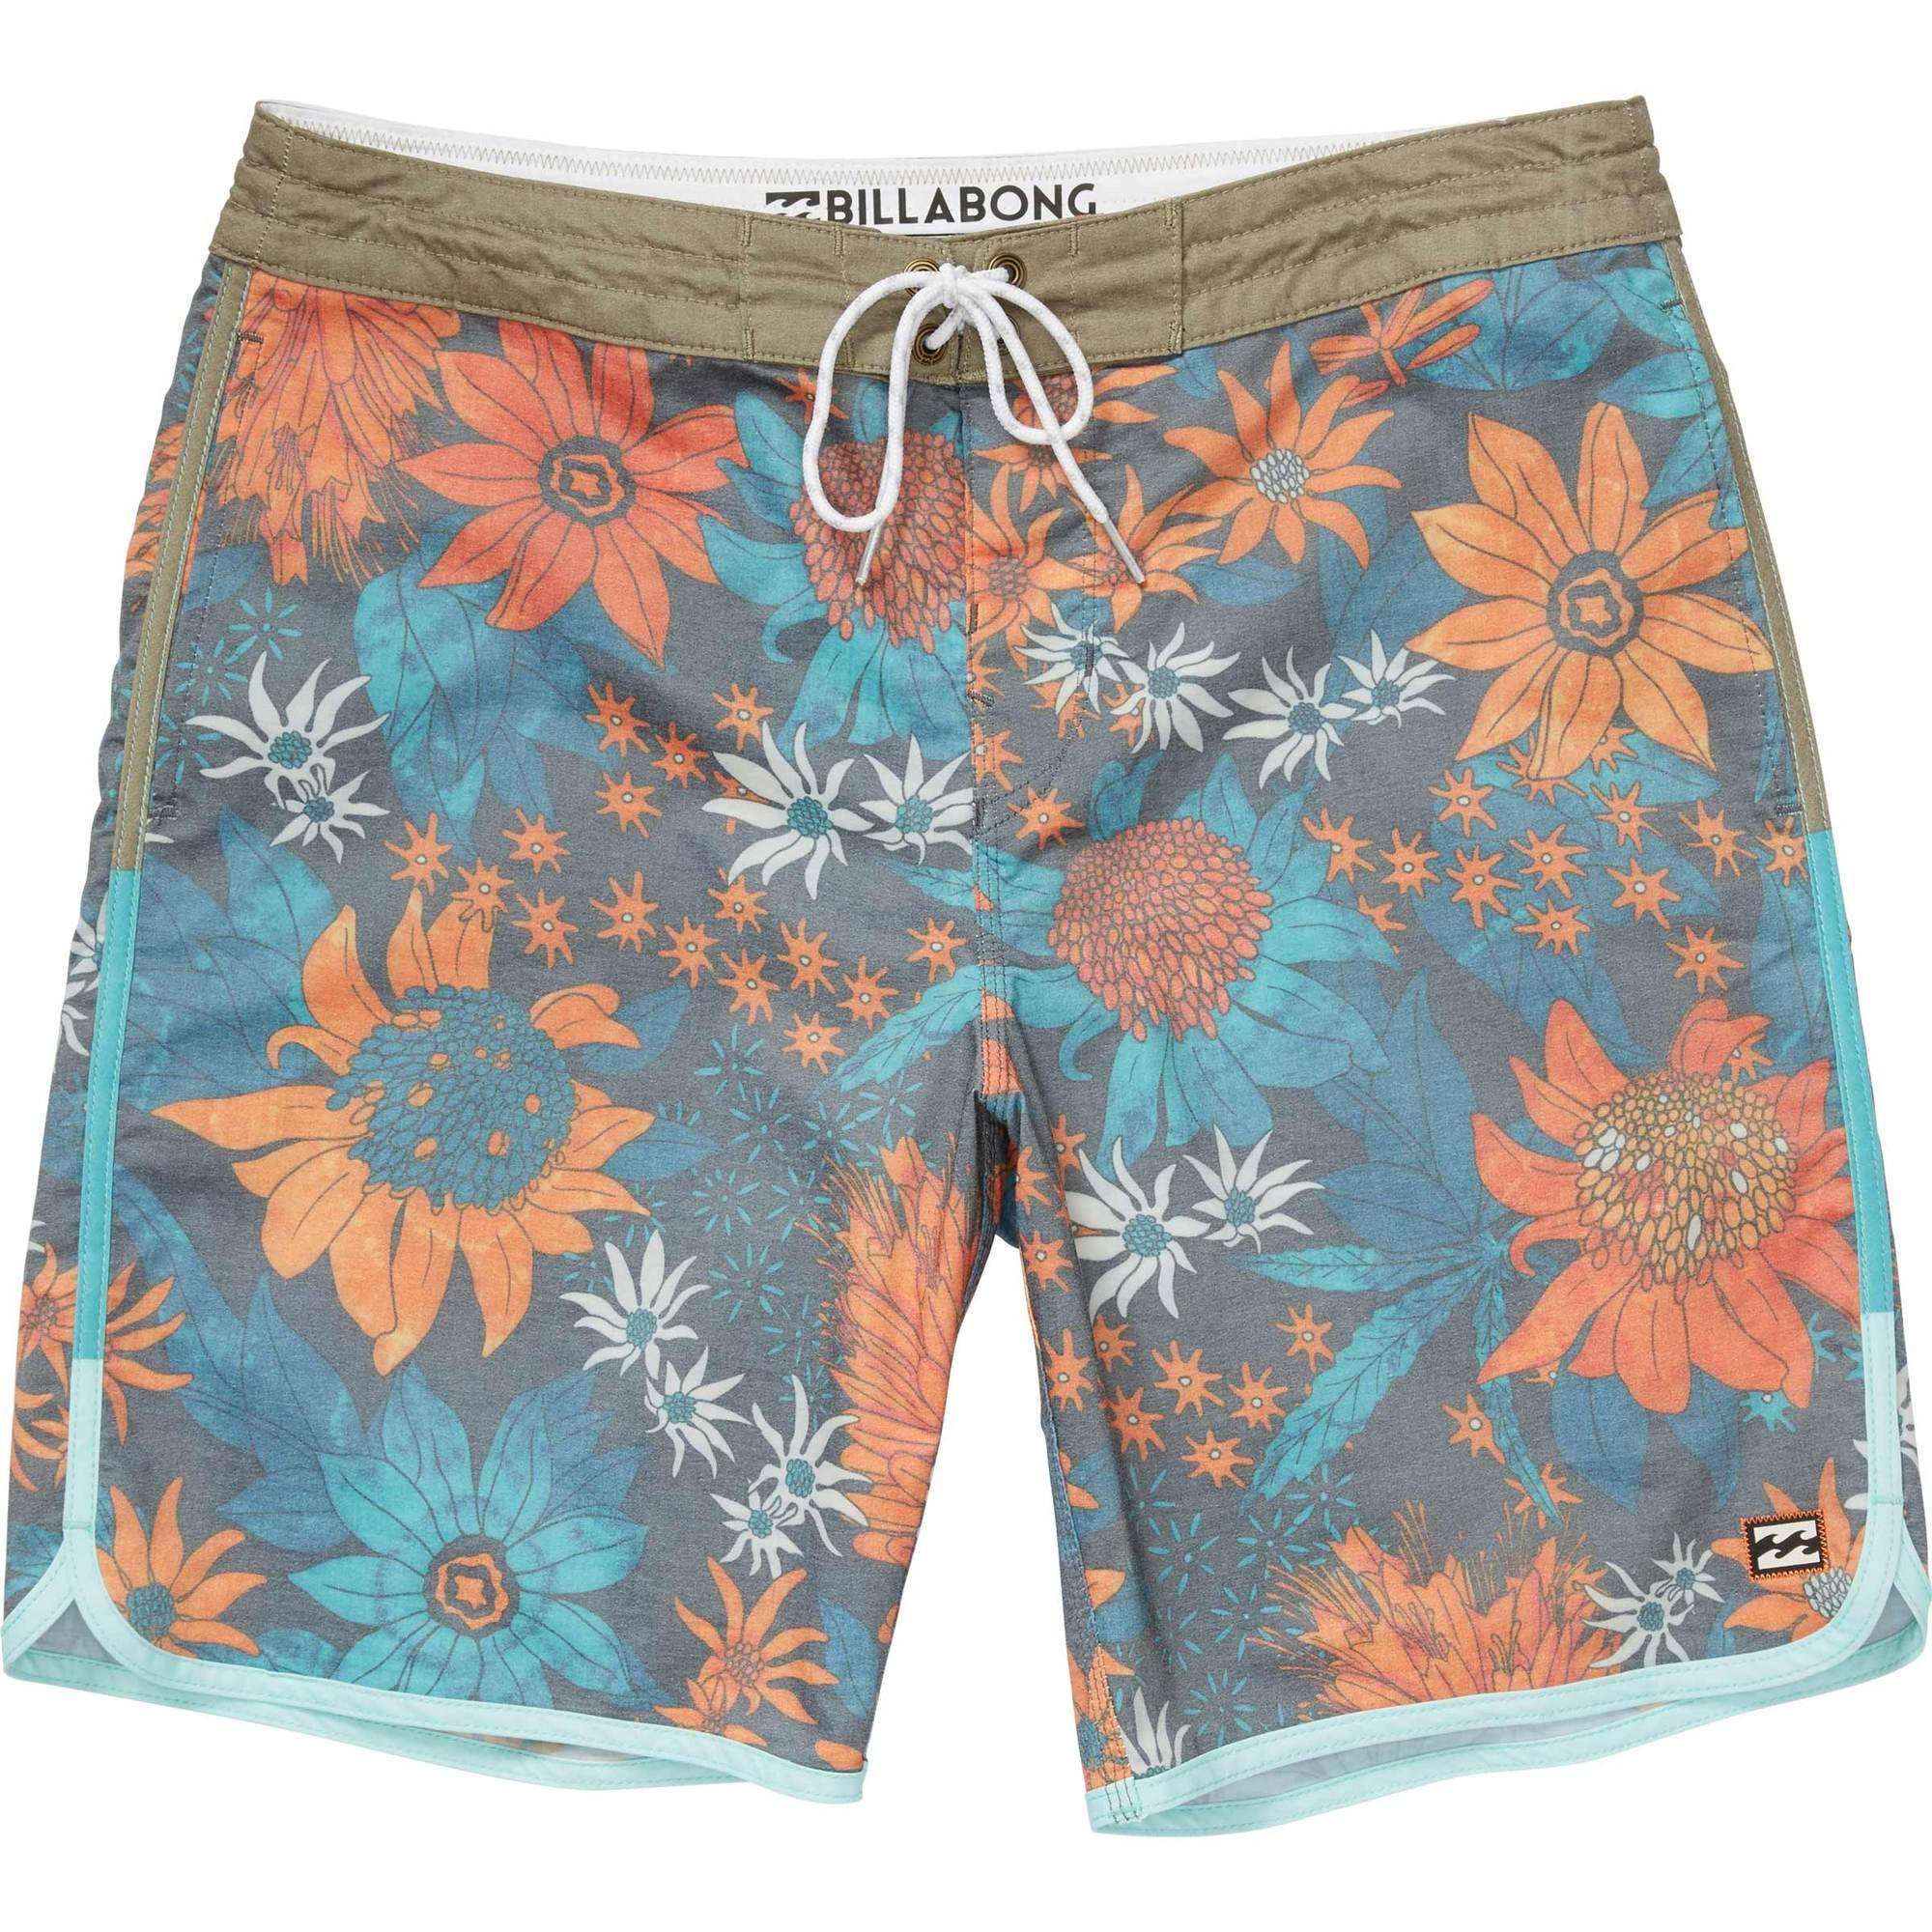 754e88cd80 Lyst - Billabong Tribong Lo Tide Scalloped Boardshorts in Blue for Men